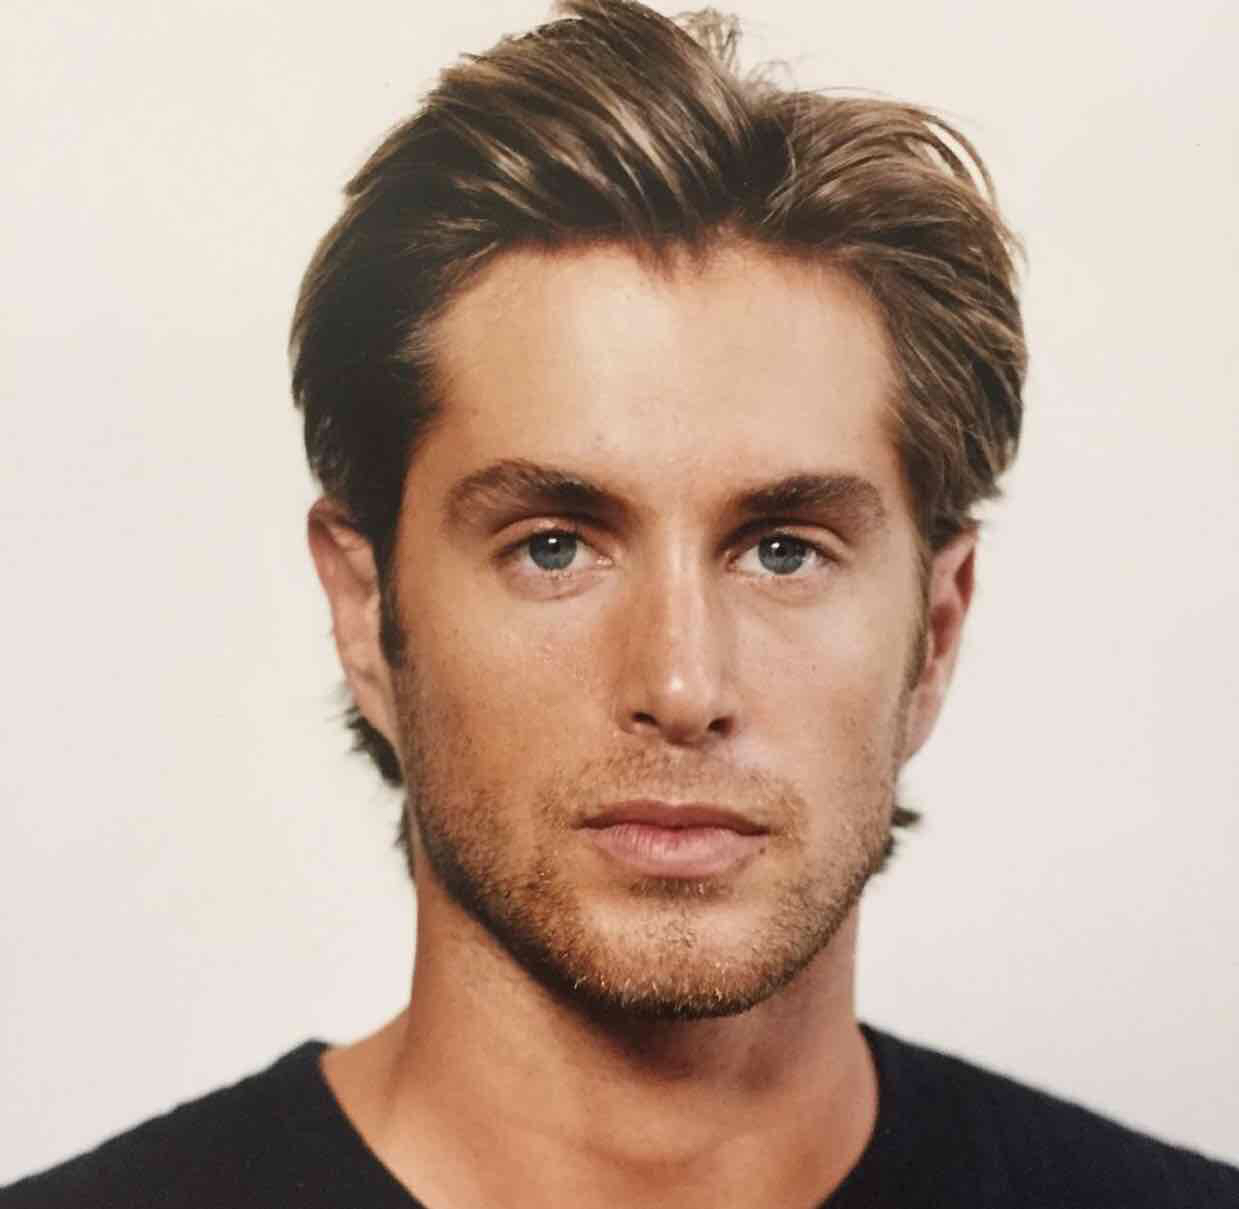 Avatar of Greg Sestero